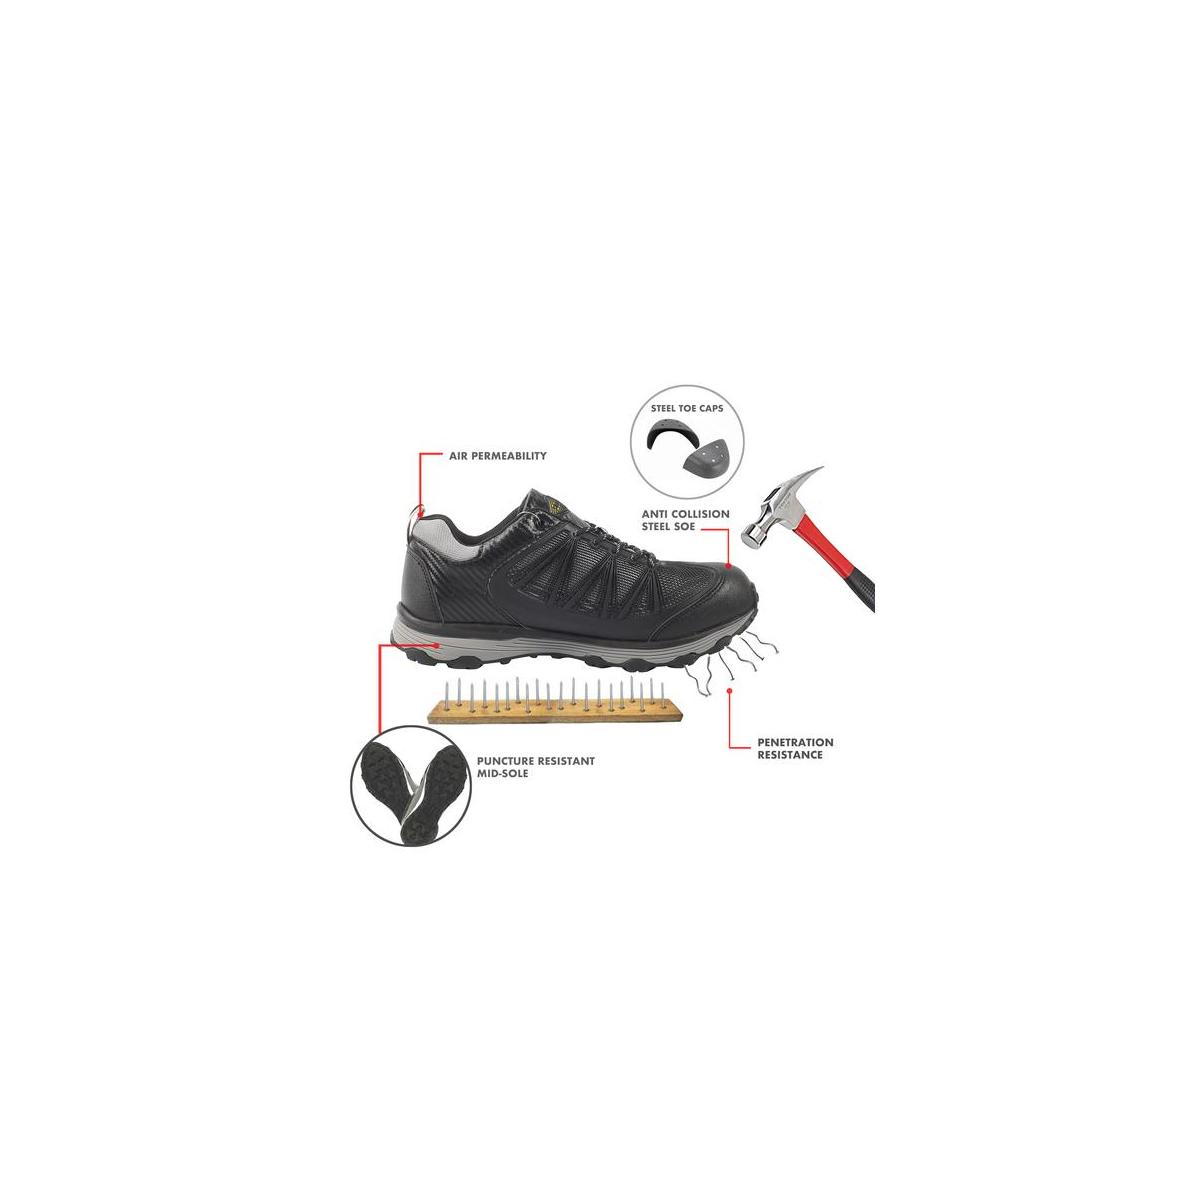 Safety Toe Athletic Shoes - Trainer Style, Steel Toe Sneakers (Only $64.9 available for rebate)